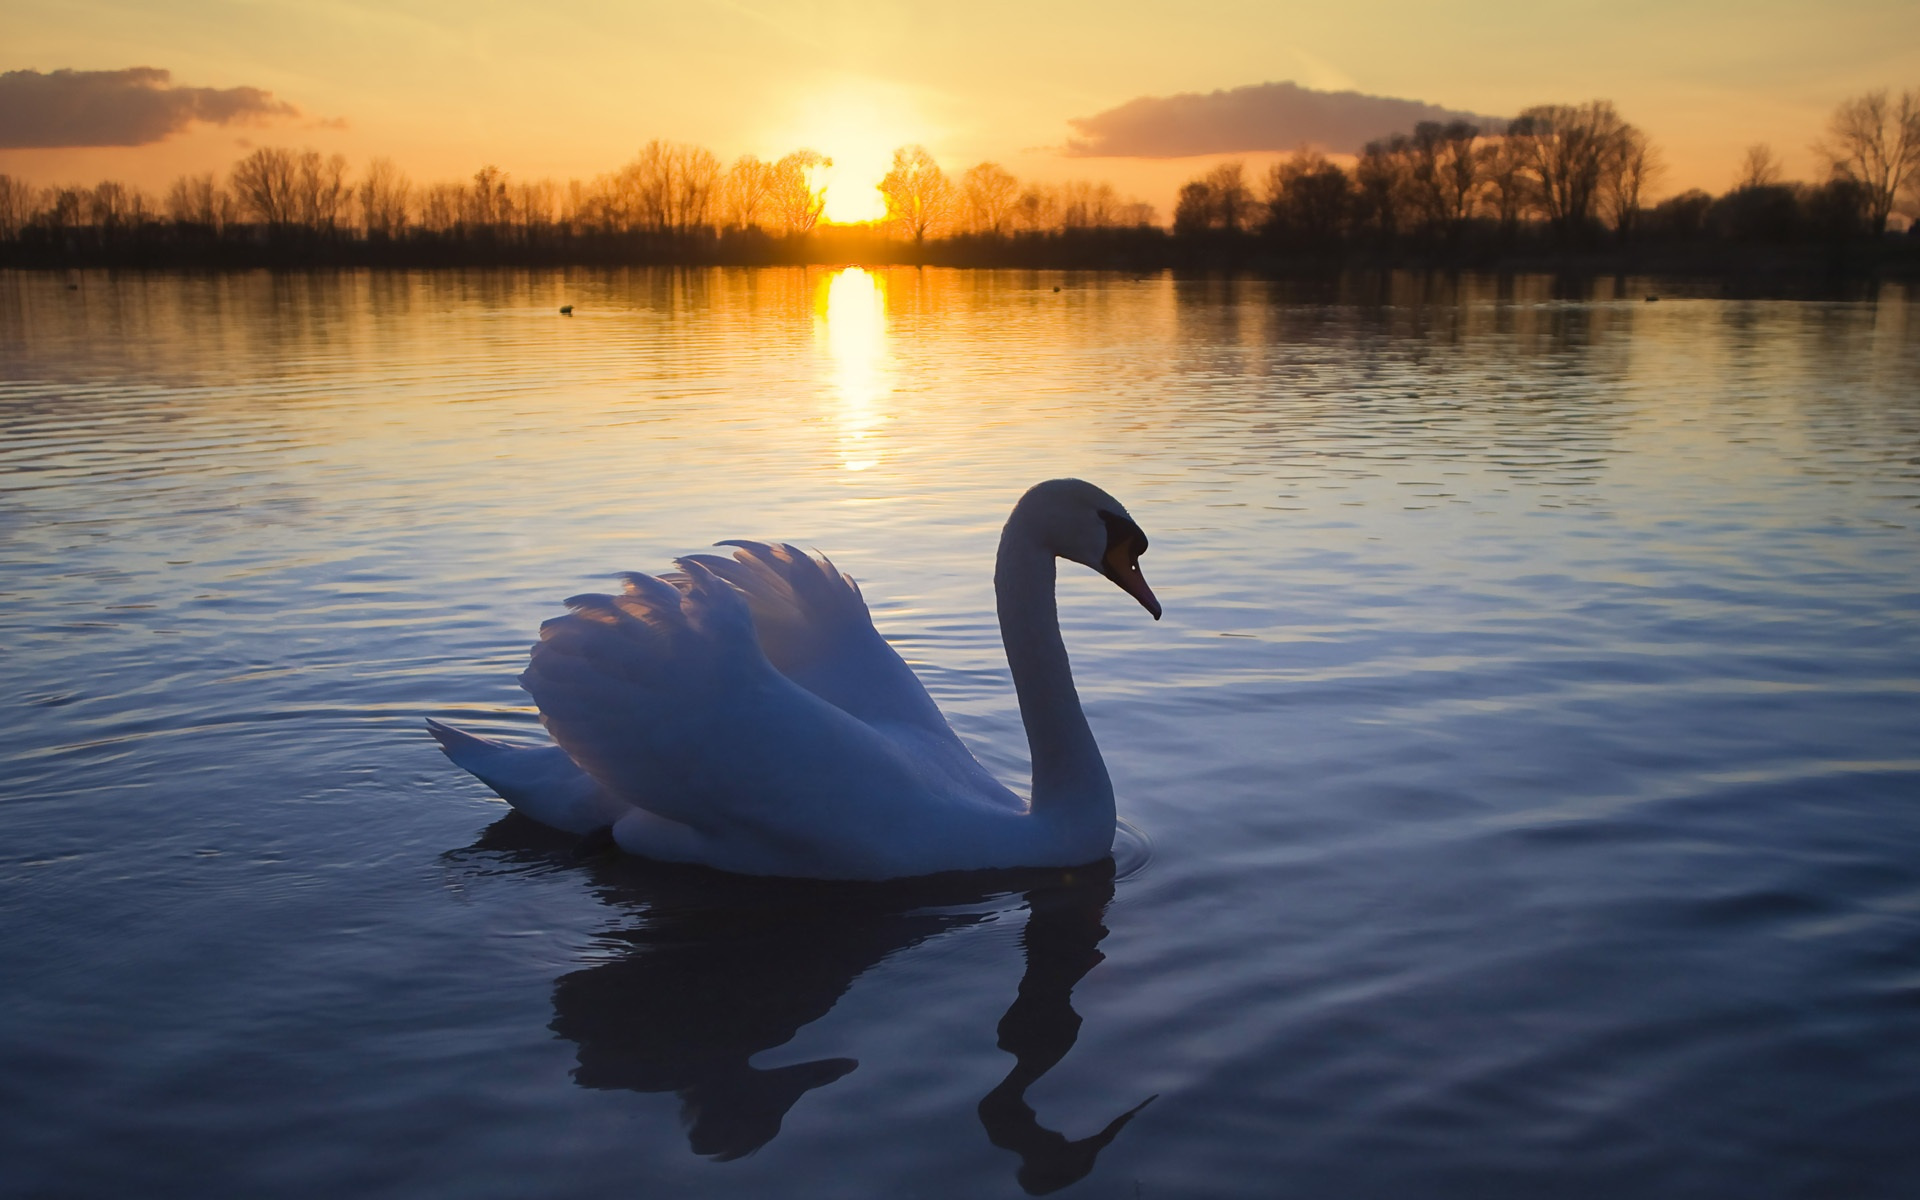 Sunset Lake And Swan | 1920 x 1200 | Download | Close